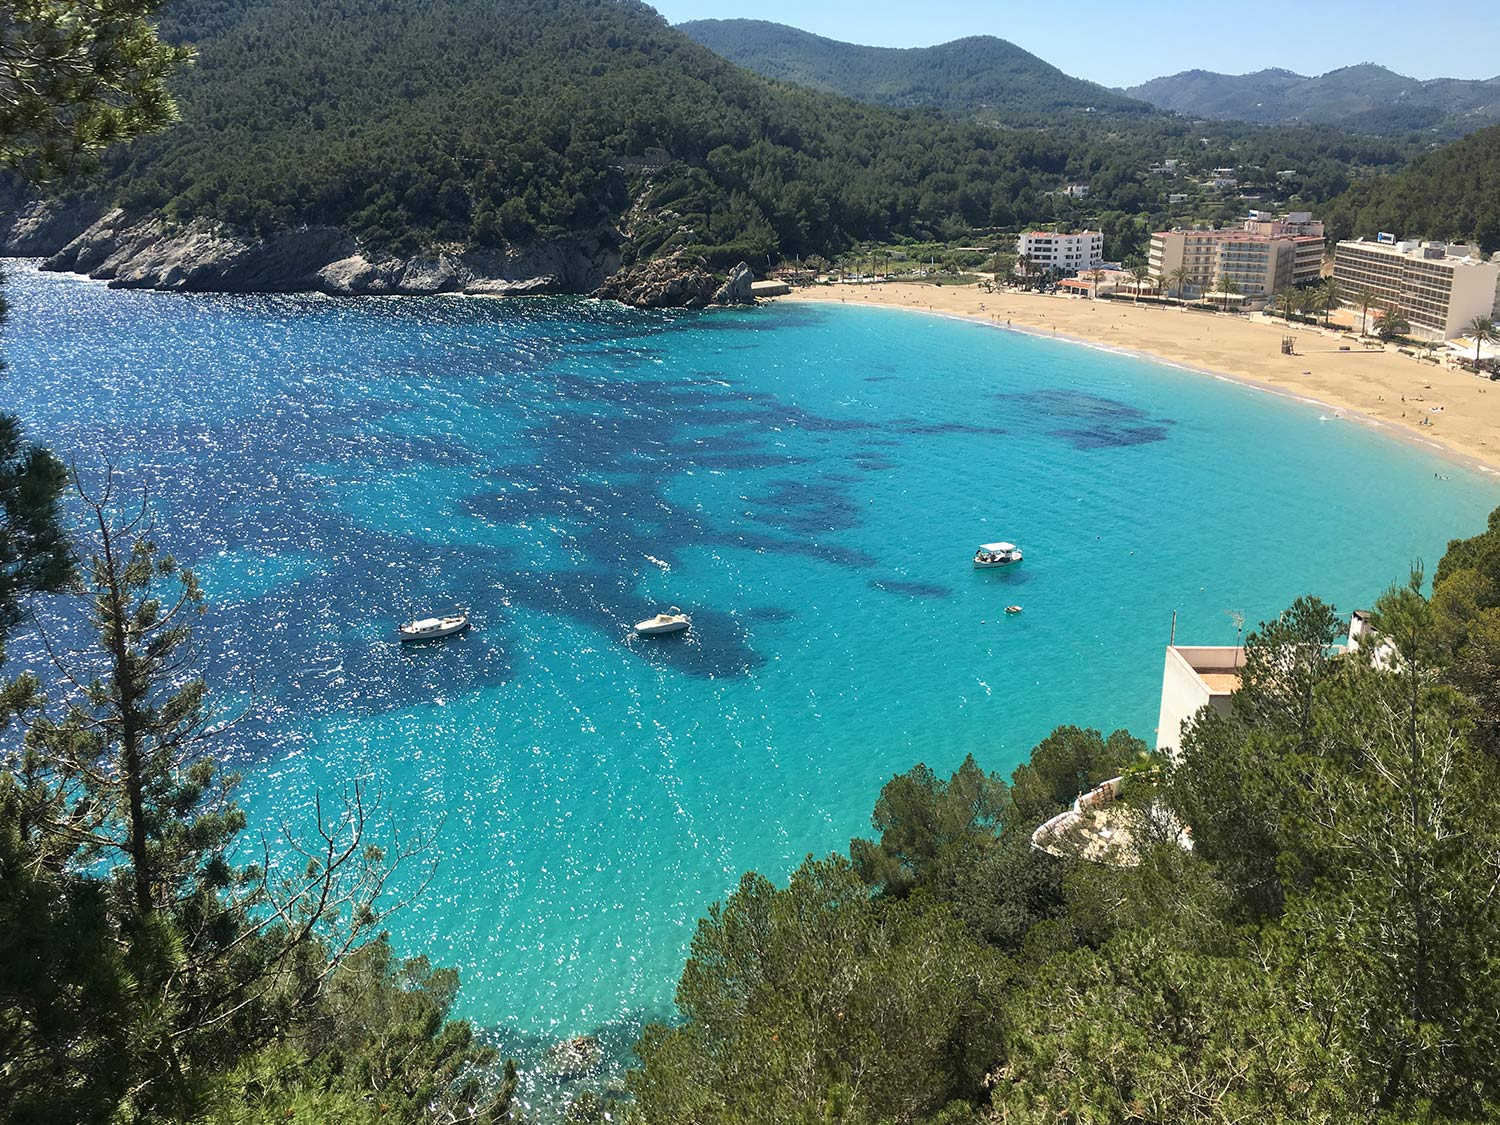 Seaflower-cala-san-vicente-boat-rental-turkoise-waters.jpg